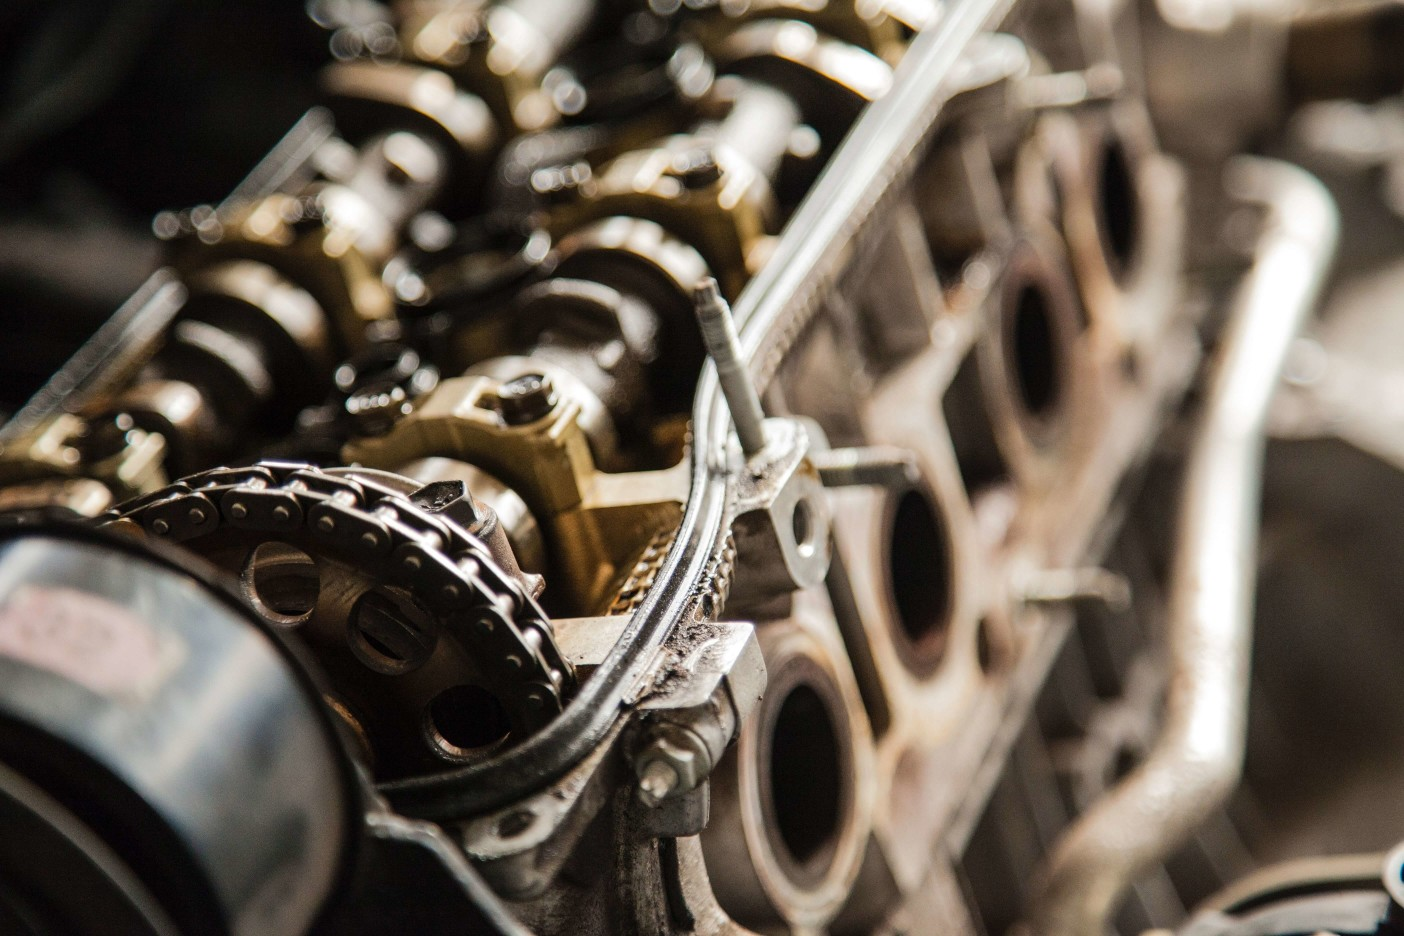 Timing chain installed on engine